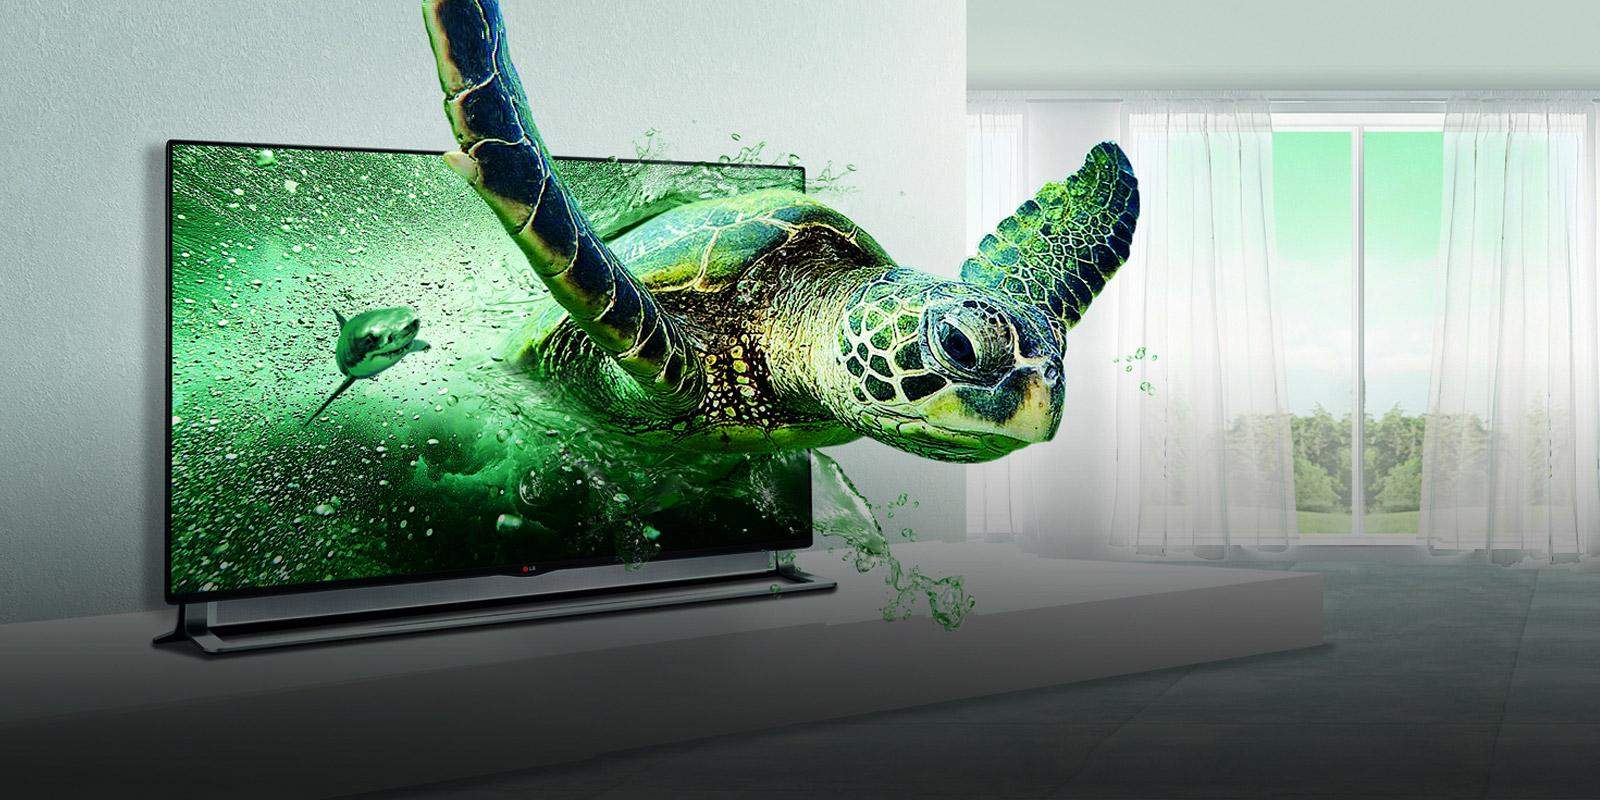 LG 3D TV with the image of a sea turtle on the screen.